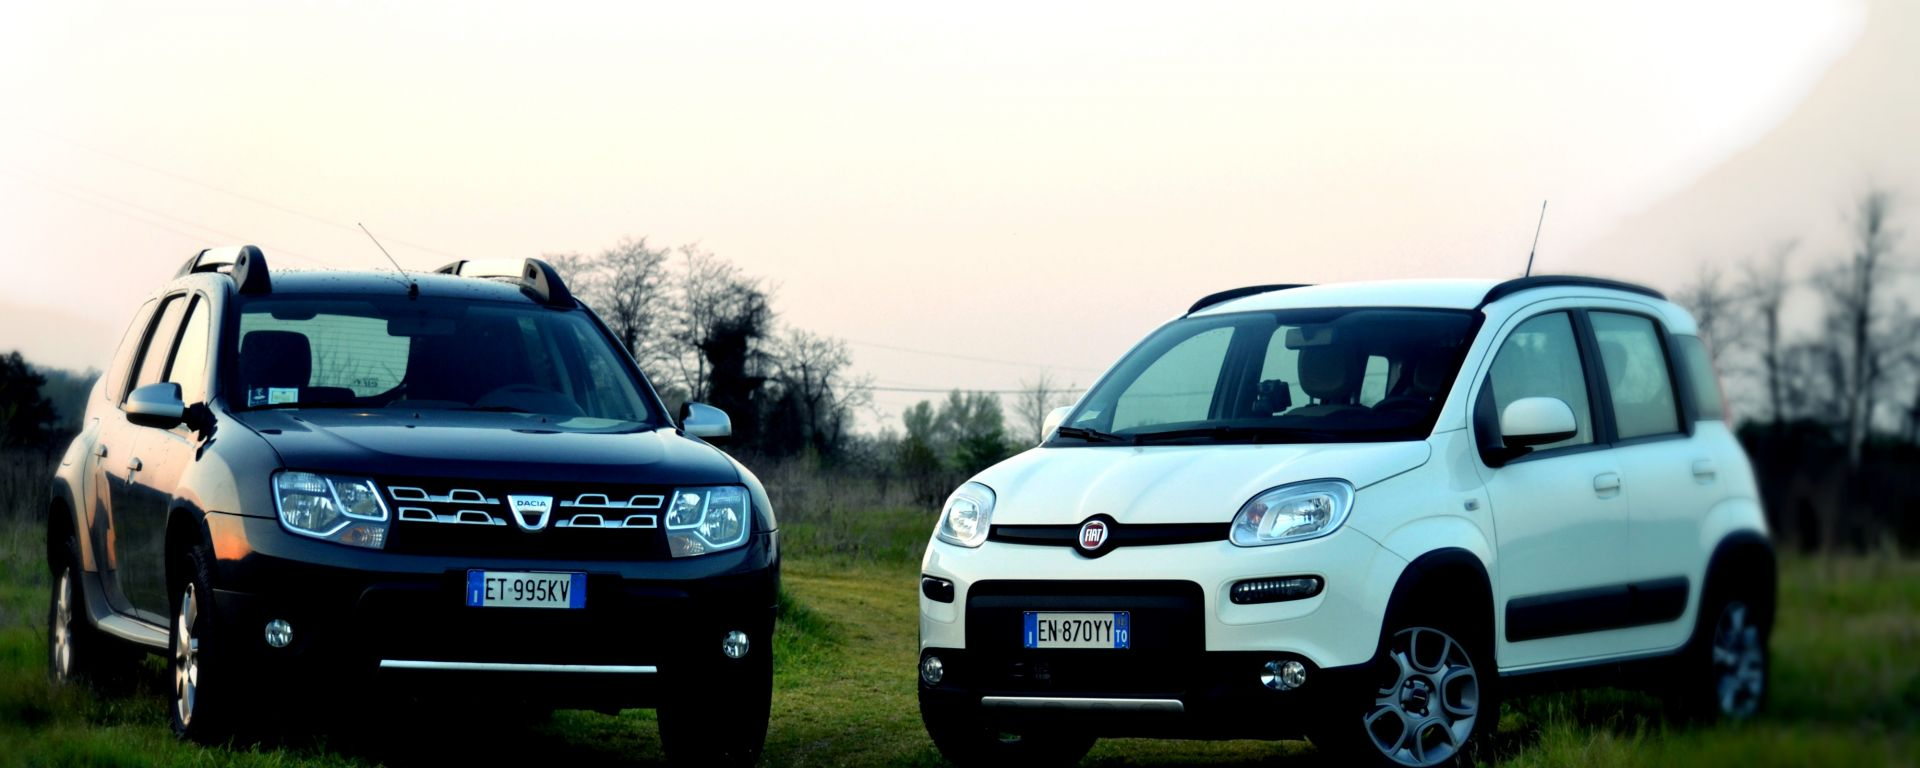 confronto fiat panda 4x4 vs dacia duster 4wd motorbox. Black Bedroom Furniture Sets. Home Design Ideas